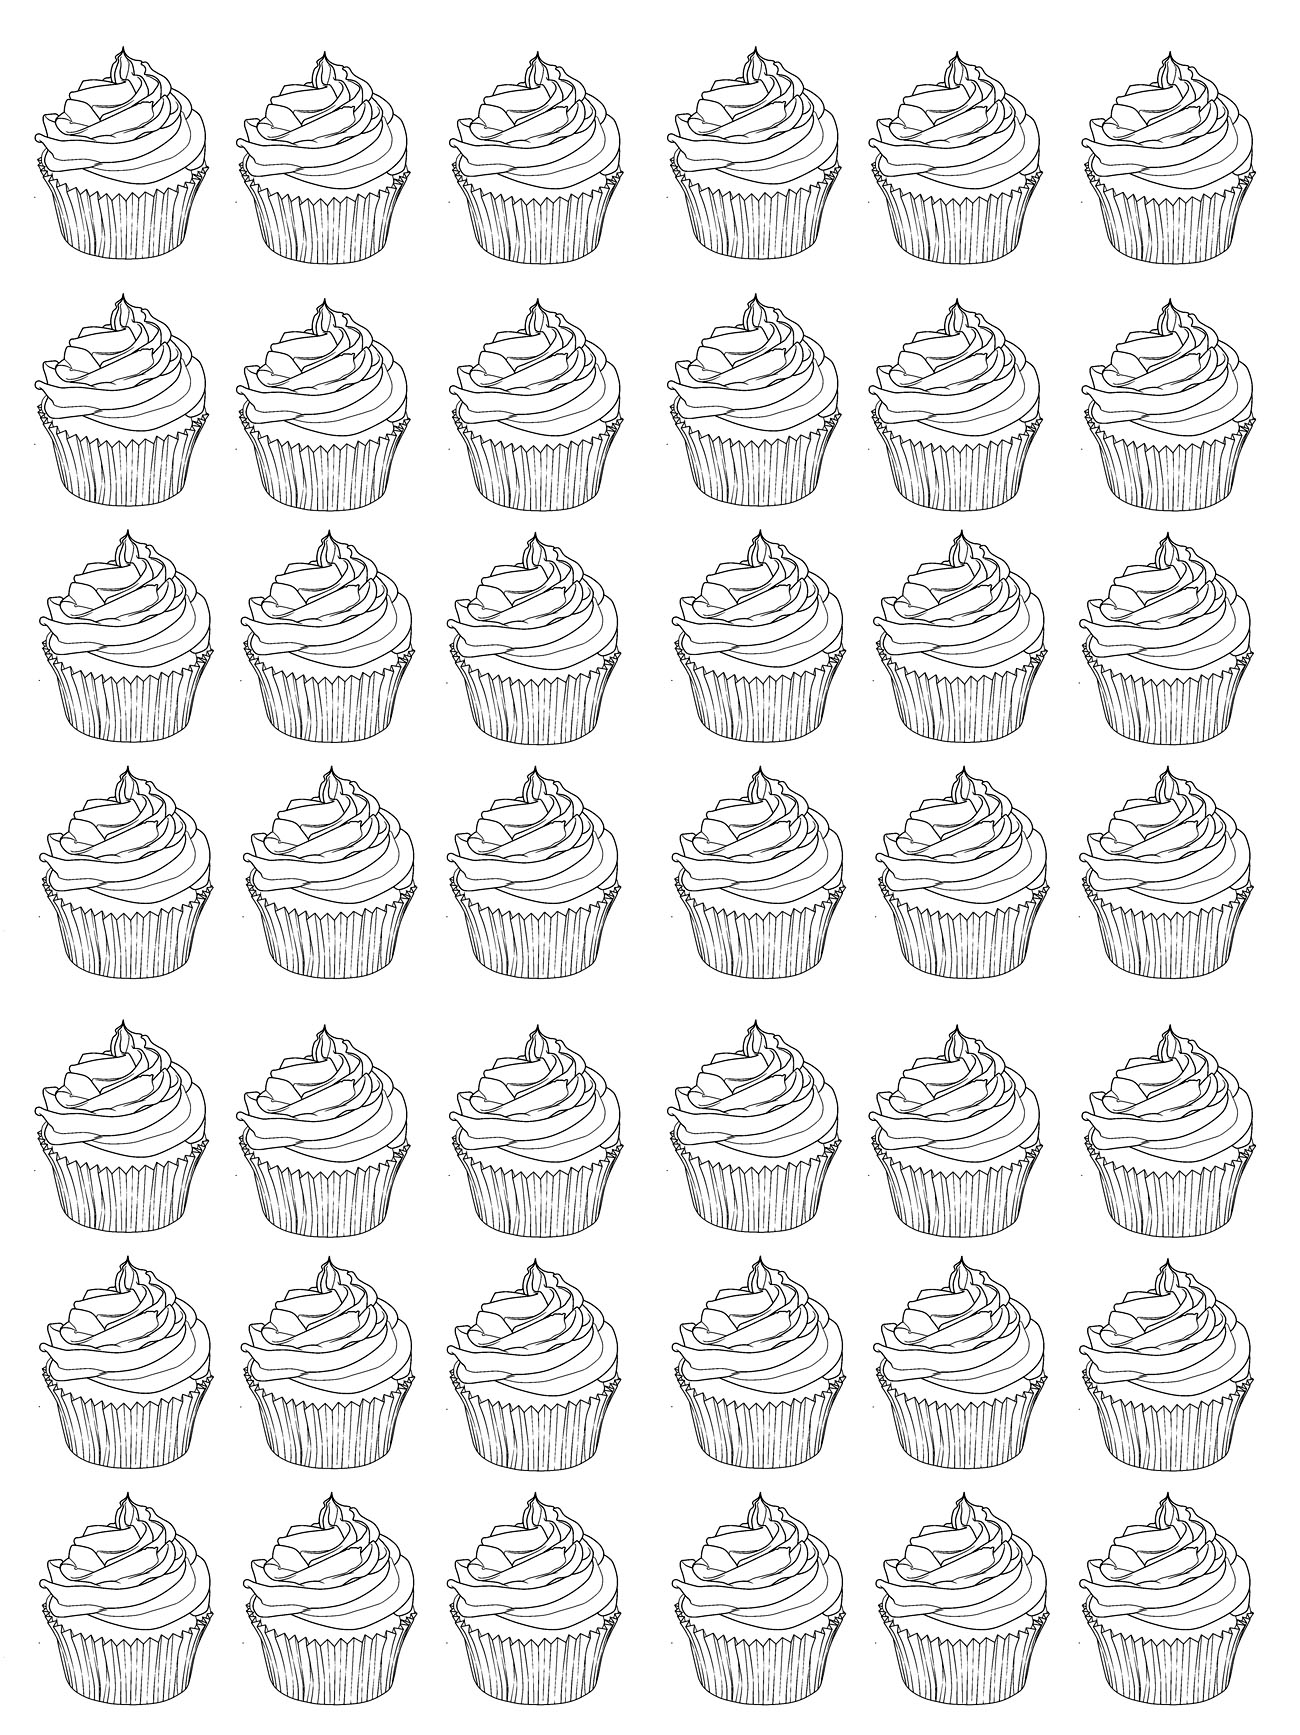 Cup cakes 71949